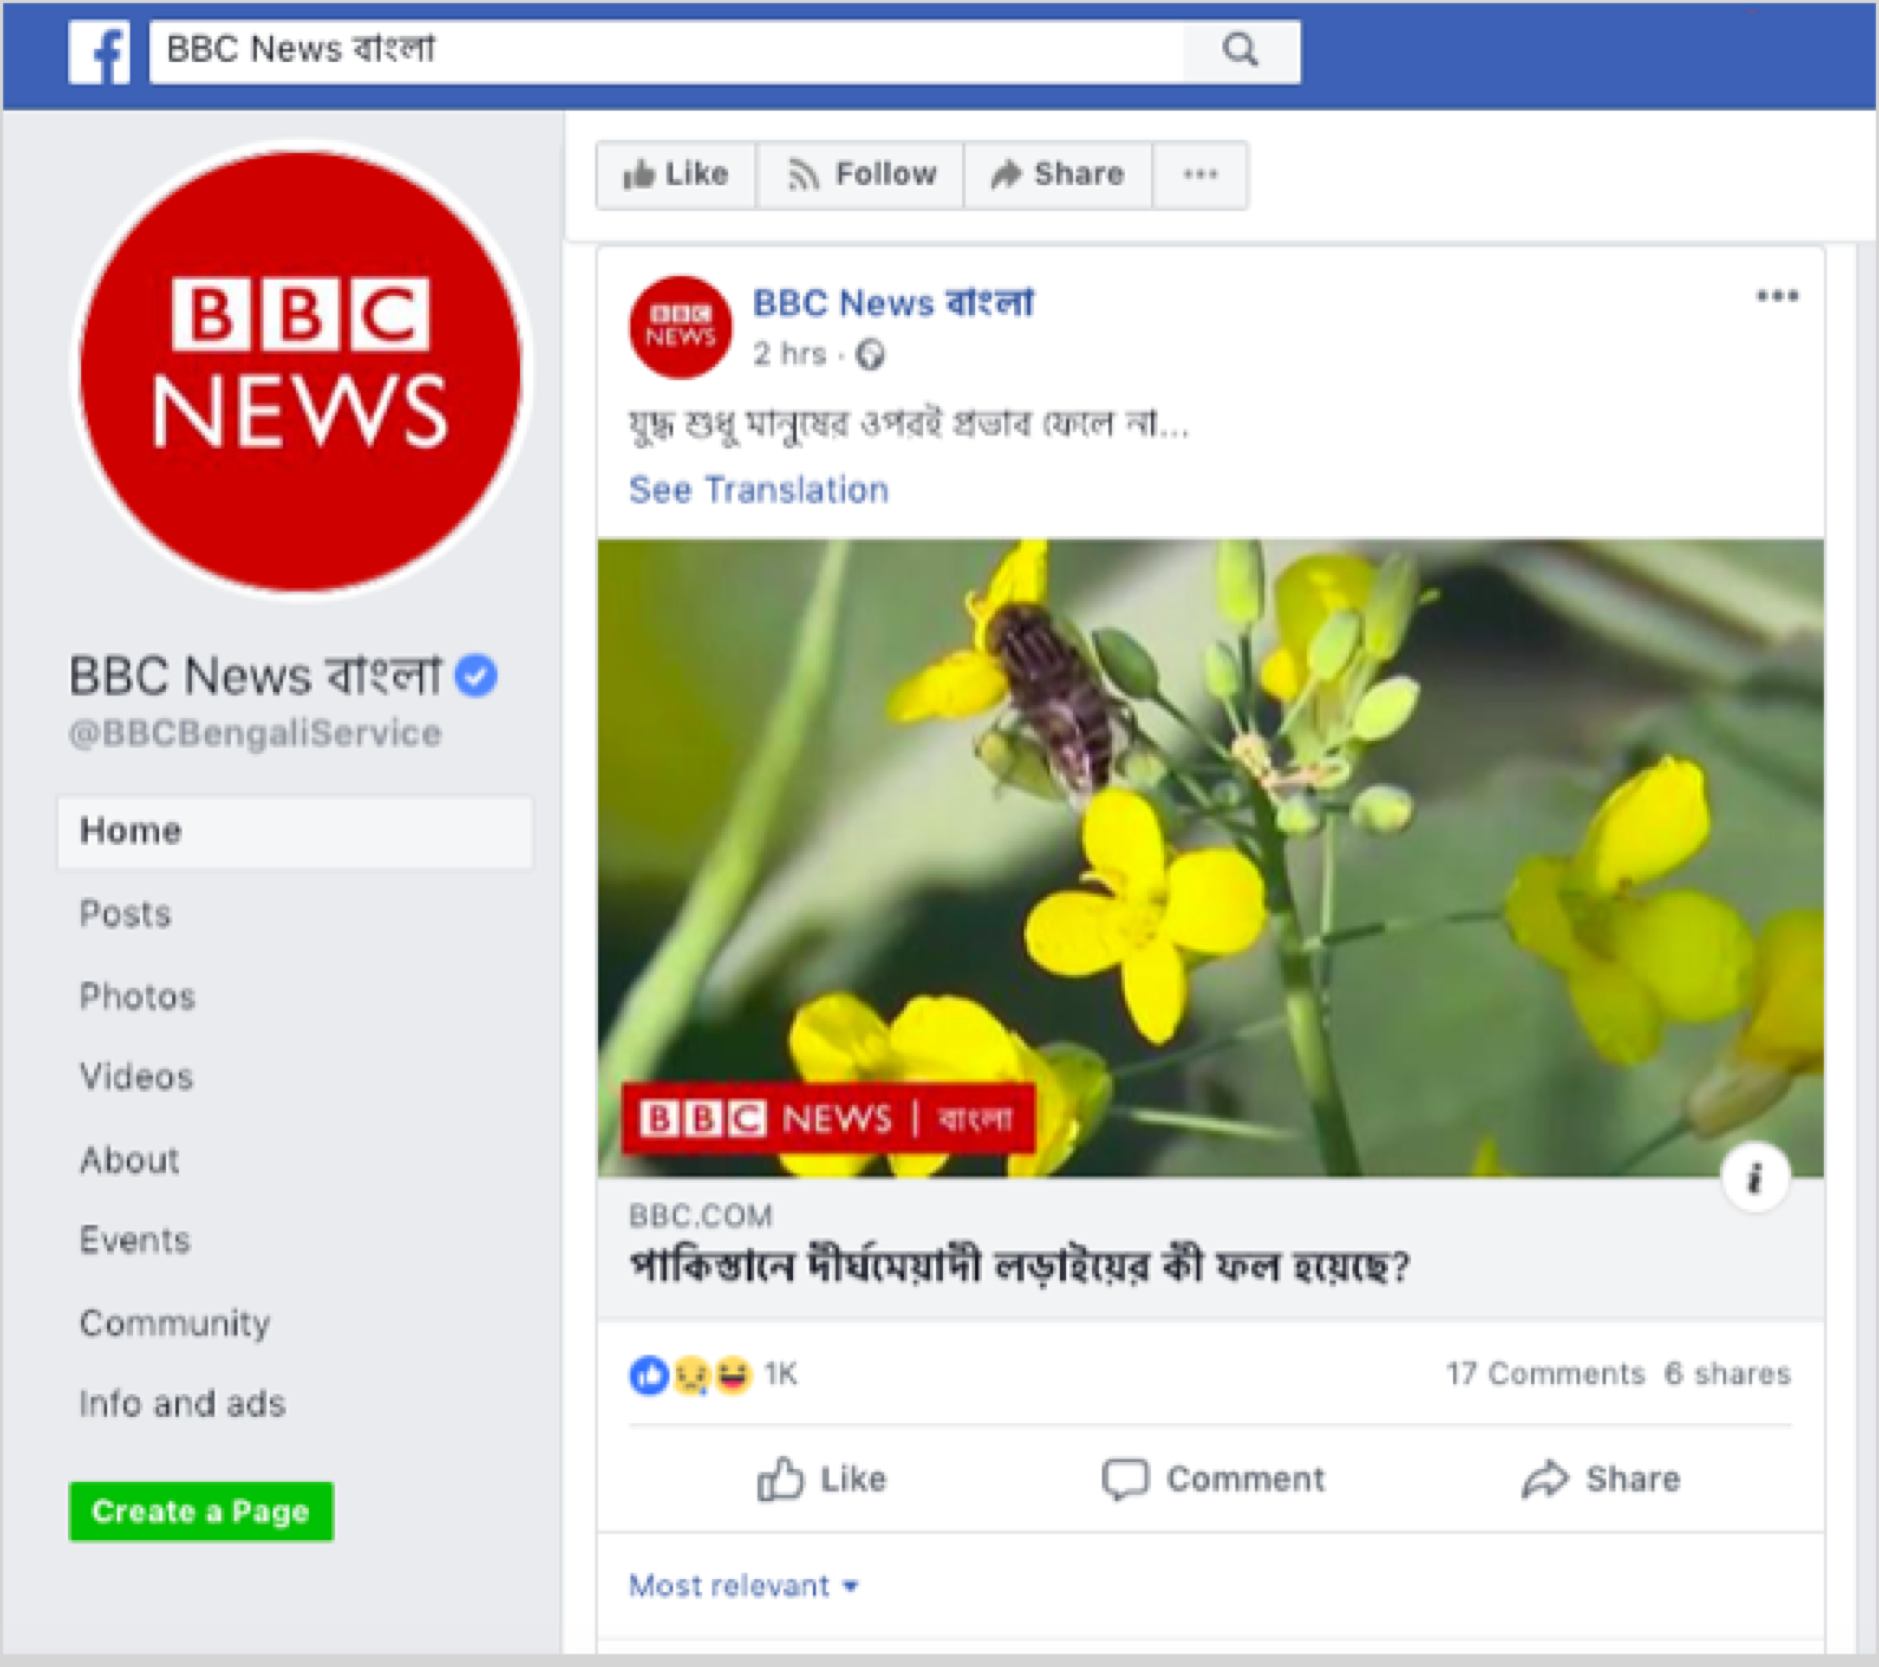 ElectionWatch: Counterfeit News Pages in Bangladesh